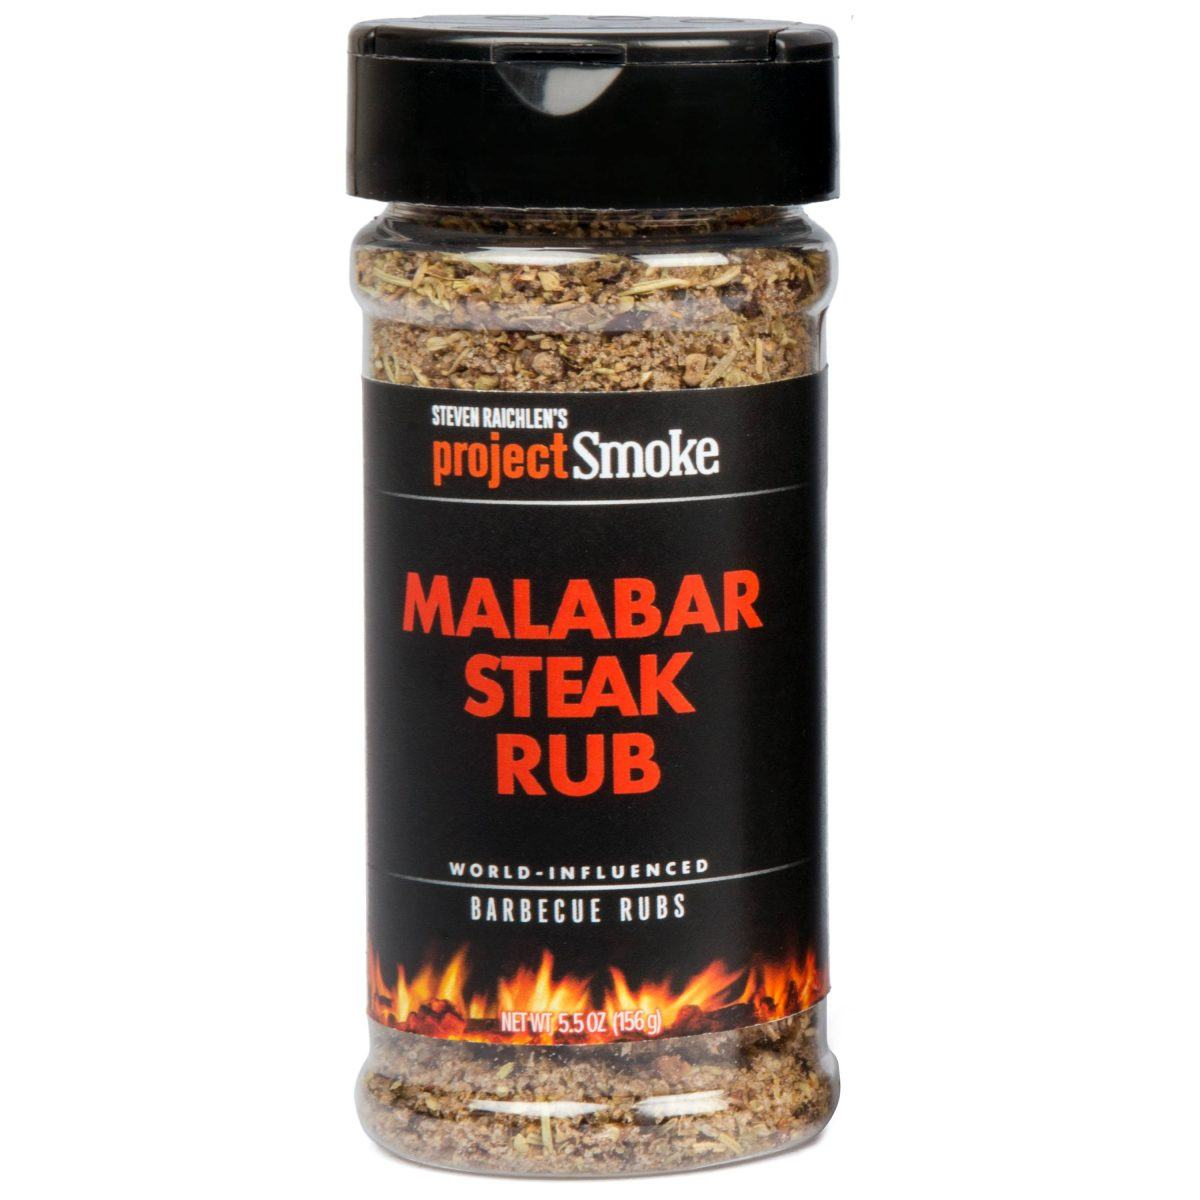 Project Smoke Malabar Steak Rub